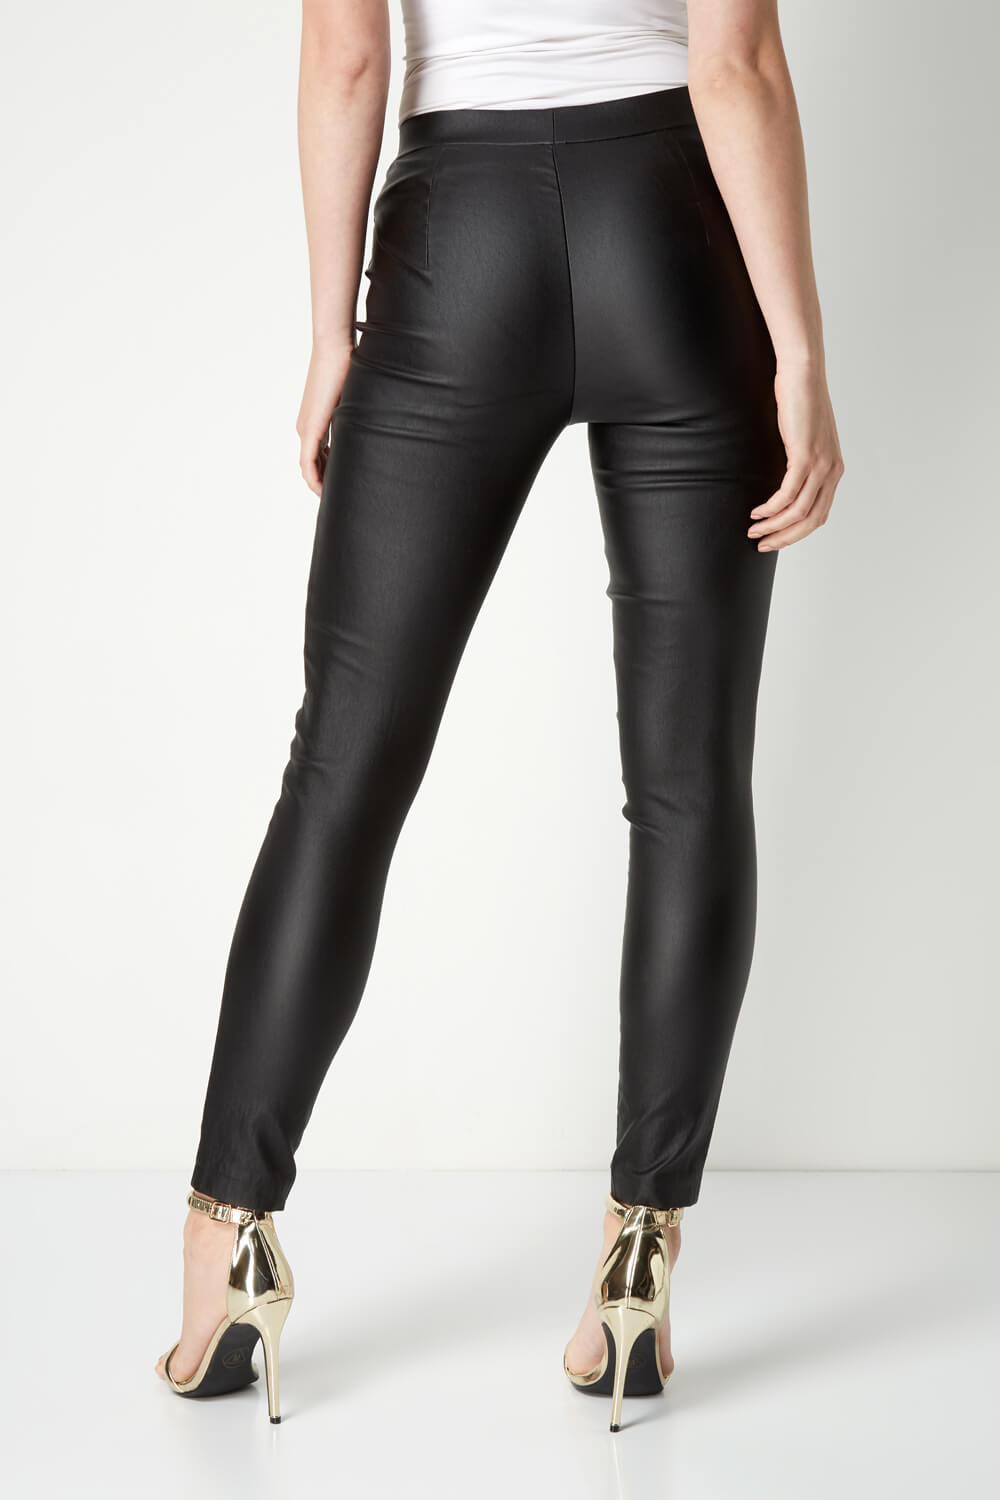 Roman Originals Women Pull On Faux Leather Tall Length Trouser